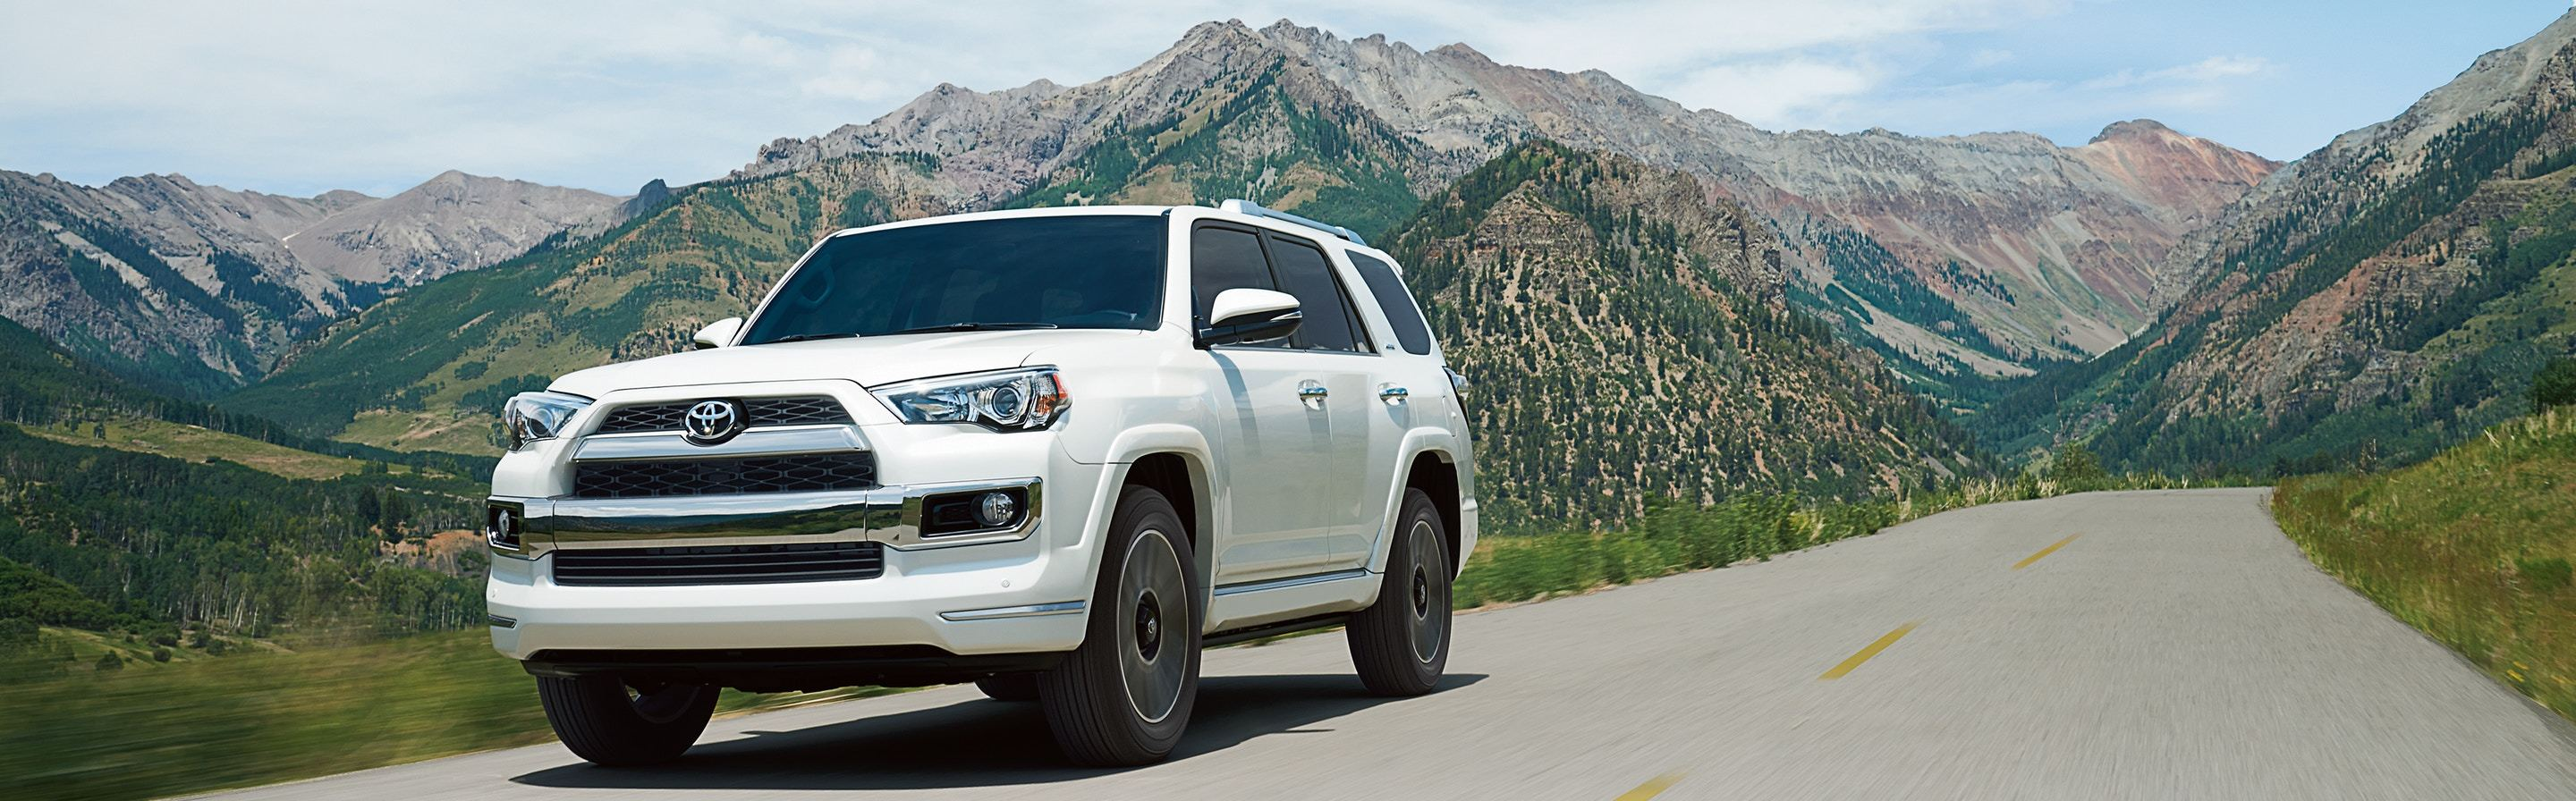 2019 Toyota 4Runner for Sale near Perrysburg, OH